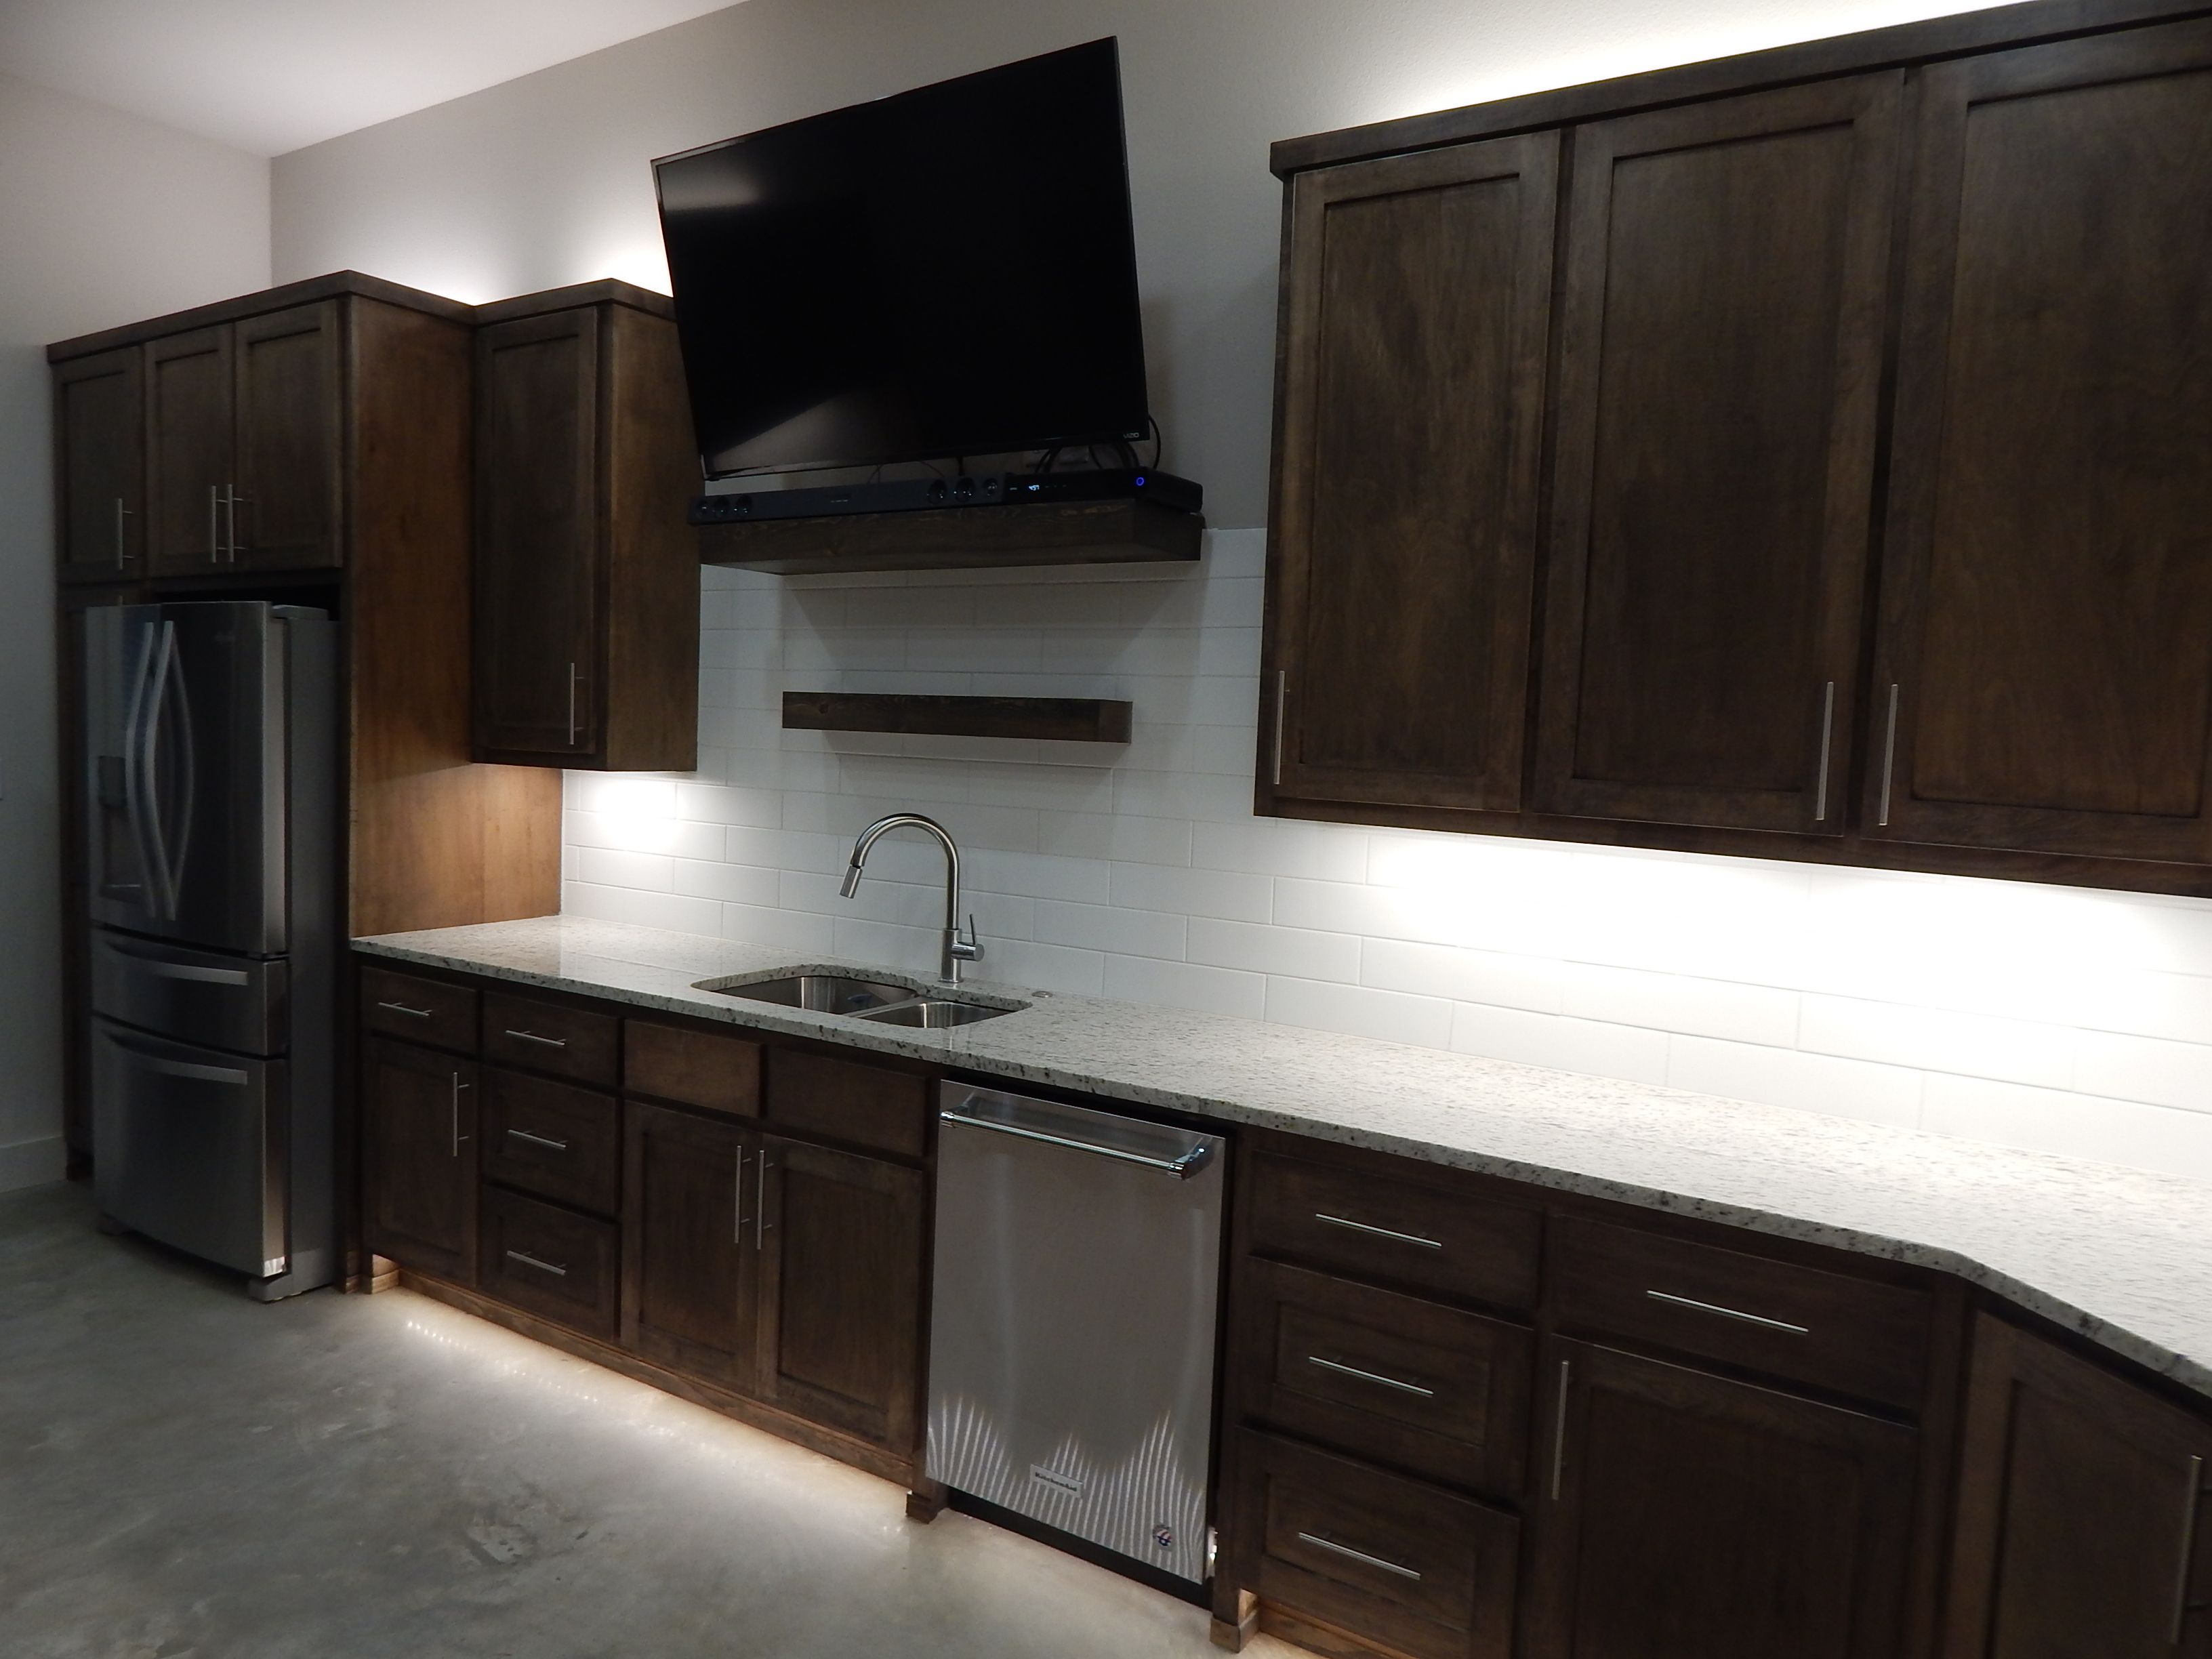 all switches & outlets hidden under cabinets to give subway tile backsplash a clean look